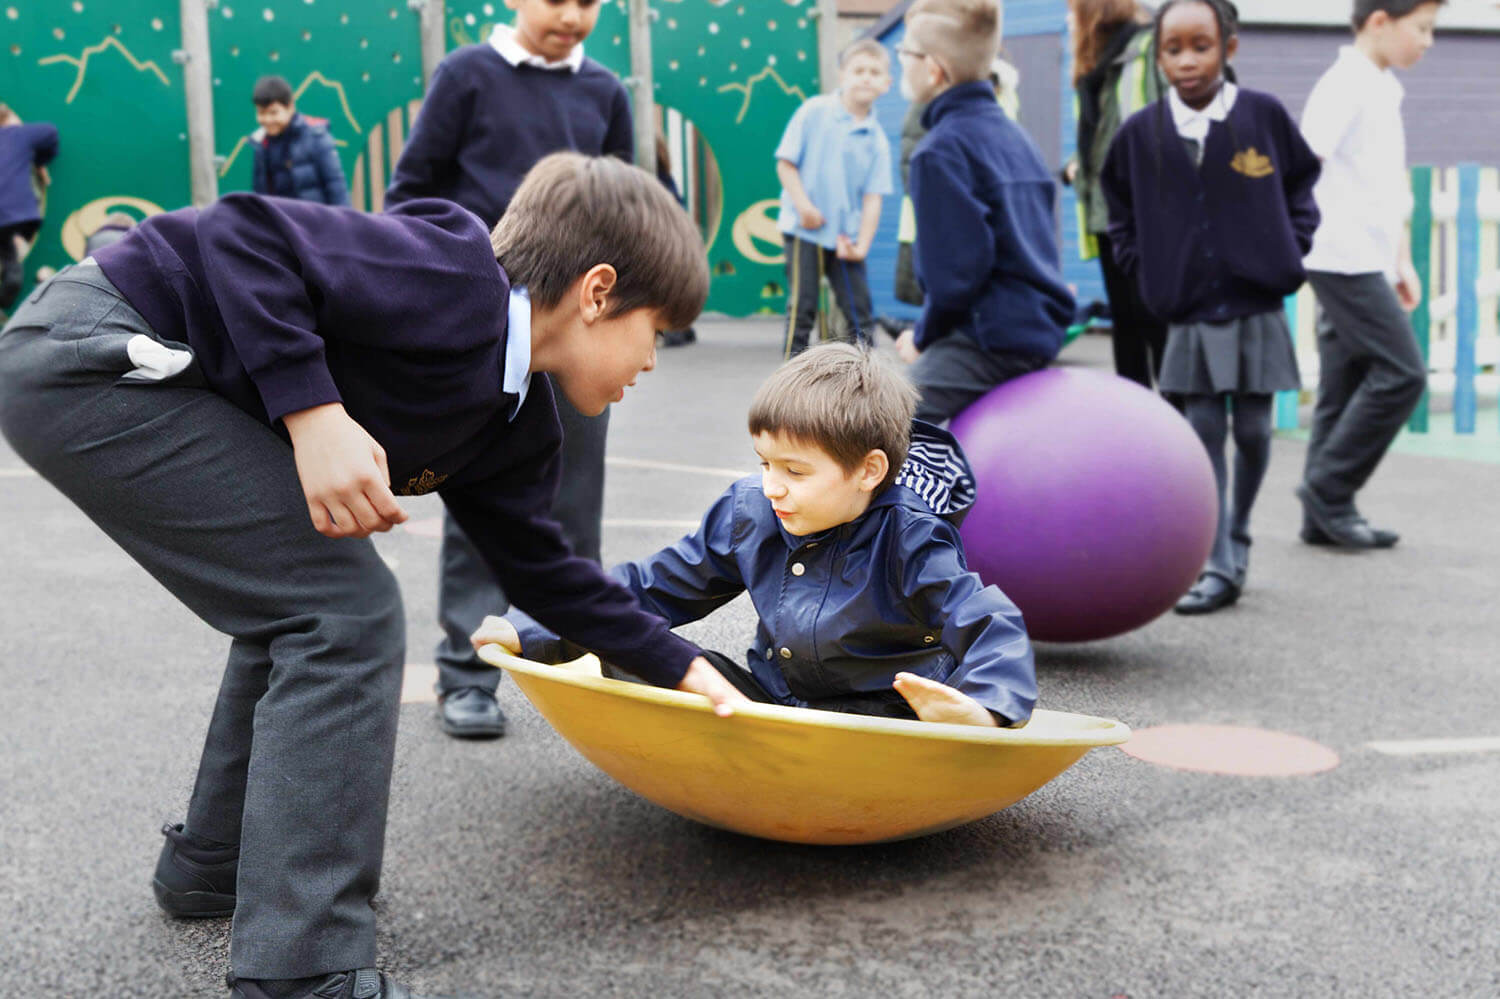 School boys in primary school playing in the playground